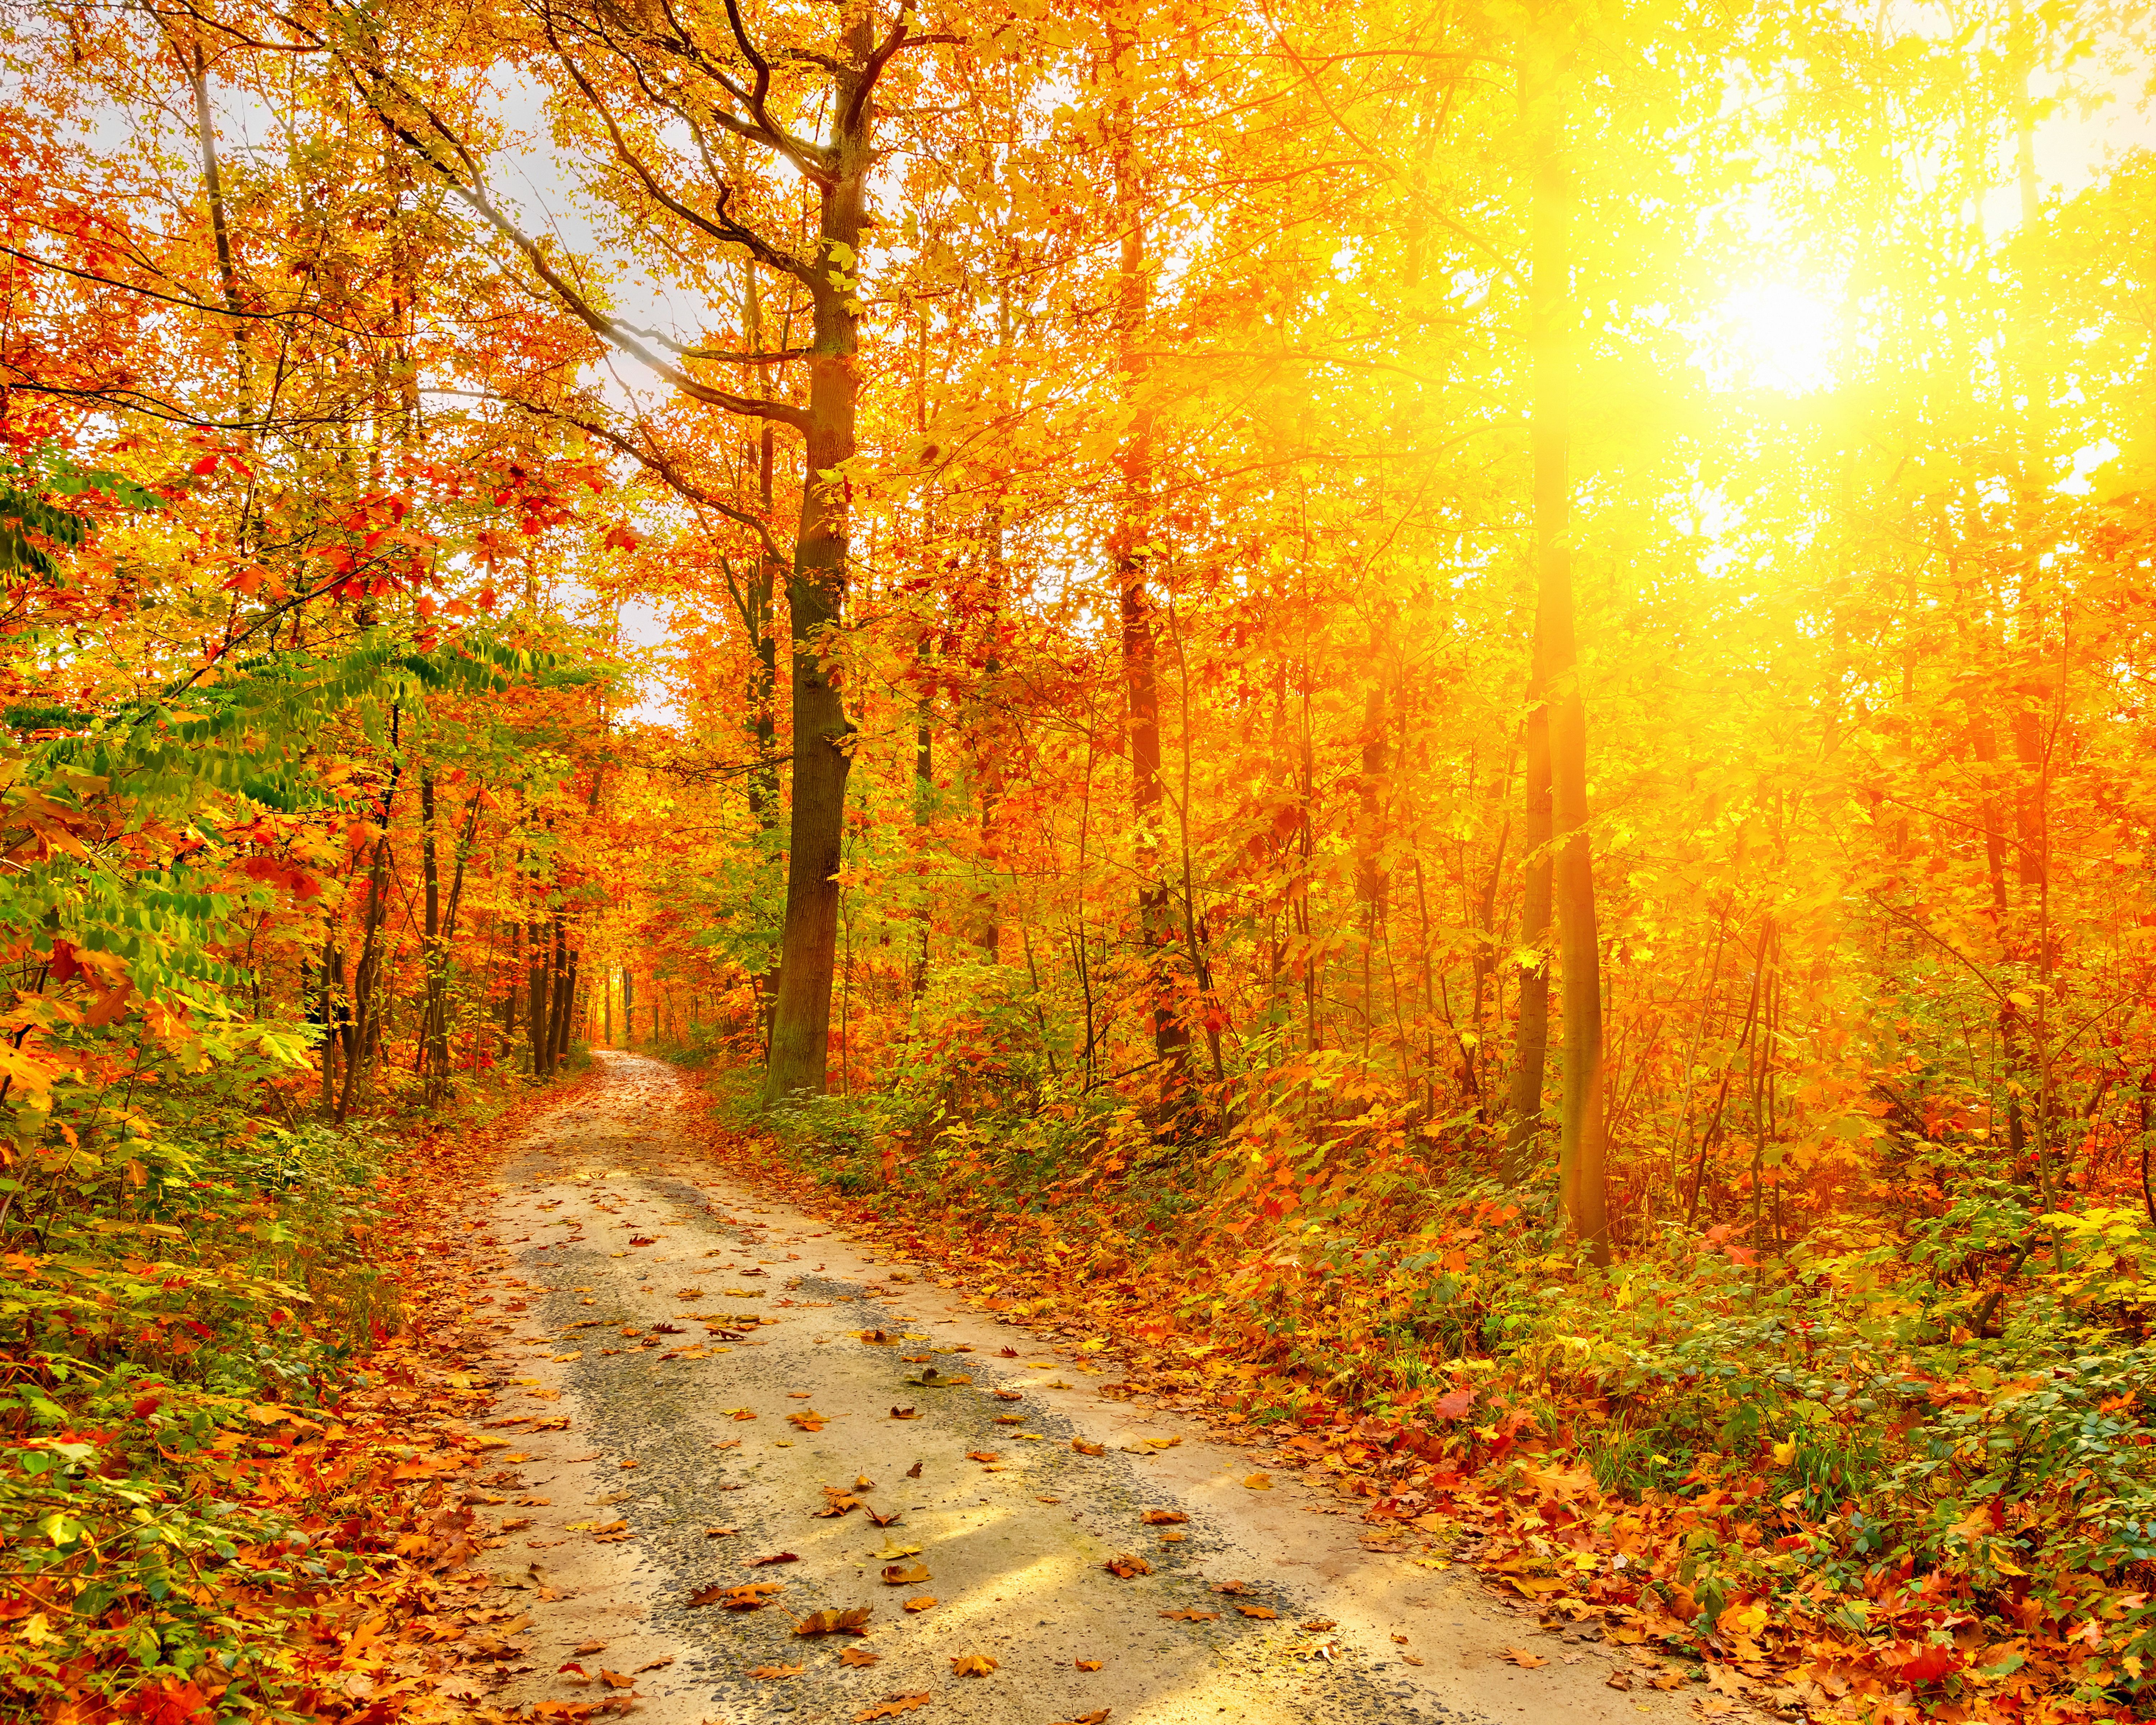 6000x4800 Picture Rays of light Foliage Nature Autumn Roads Forests 6000x4800